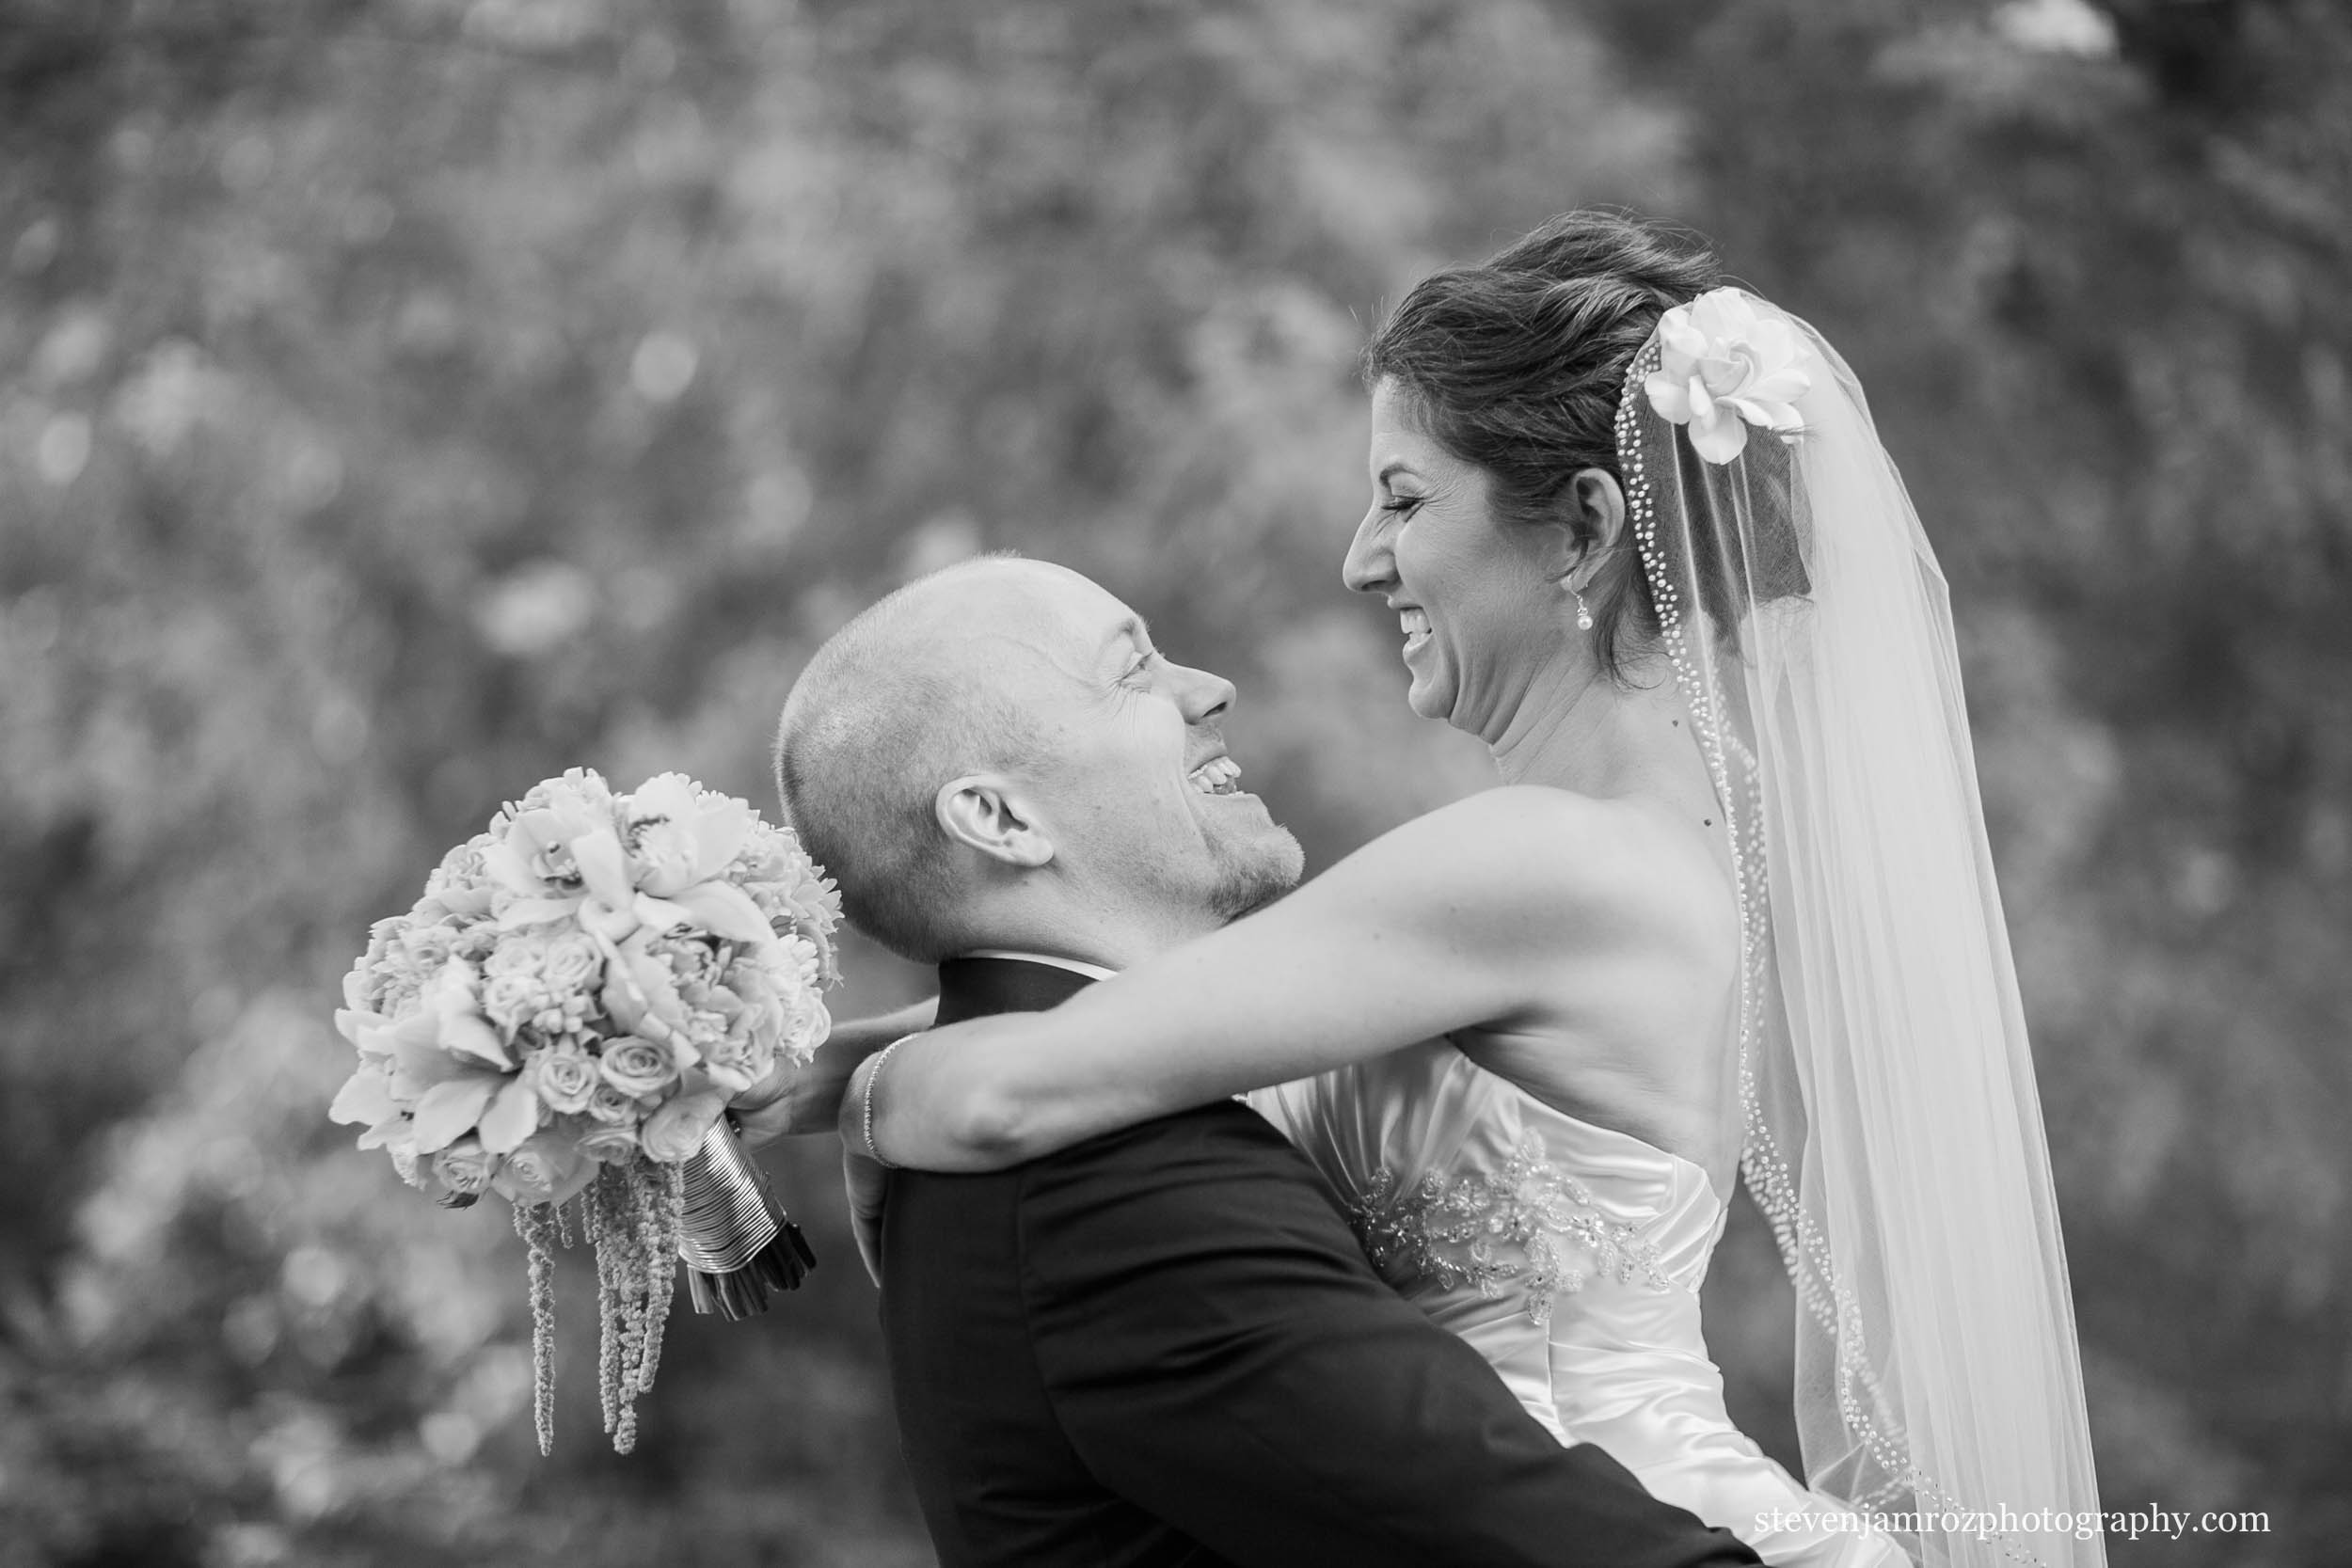 groom-bride-hug-raleigh-photographer-0895.jpg